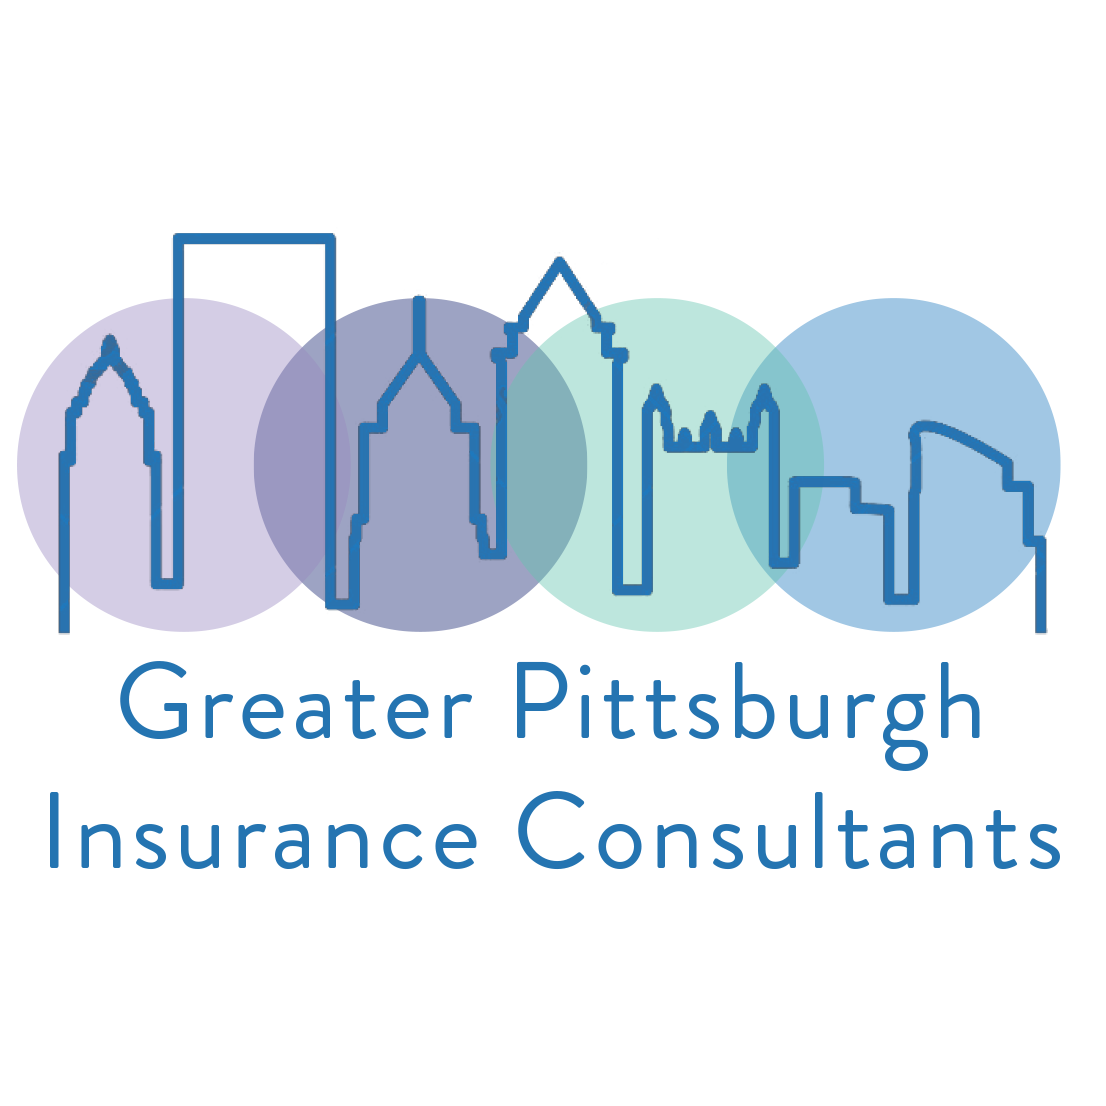 Greater Pittsburgh Insurace Consultants